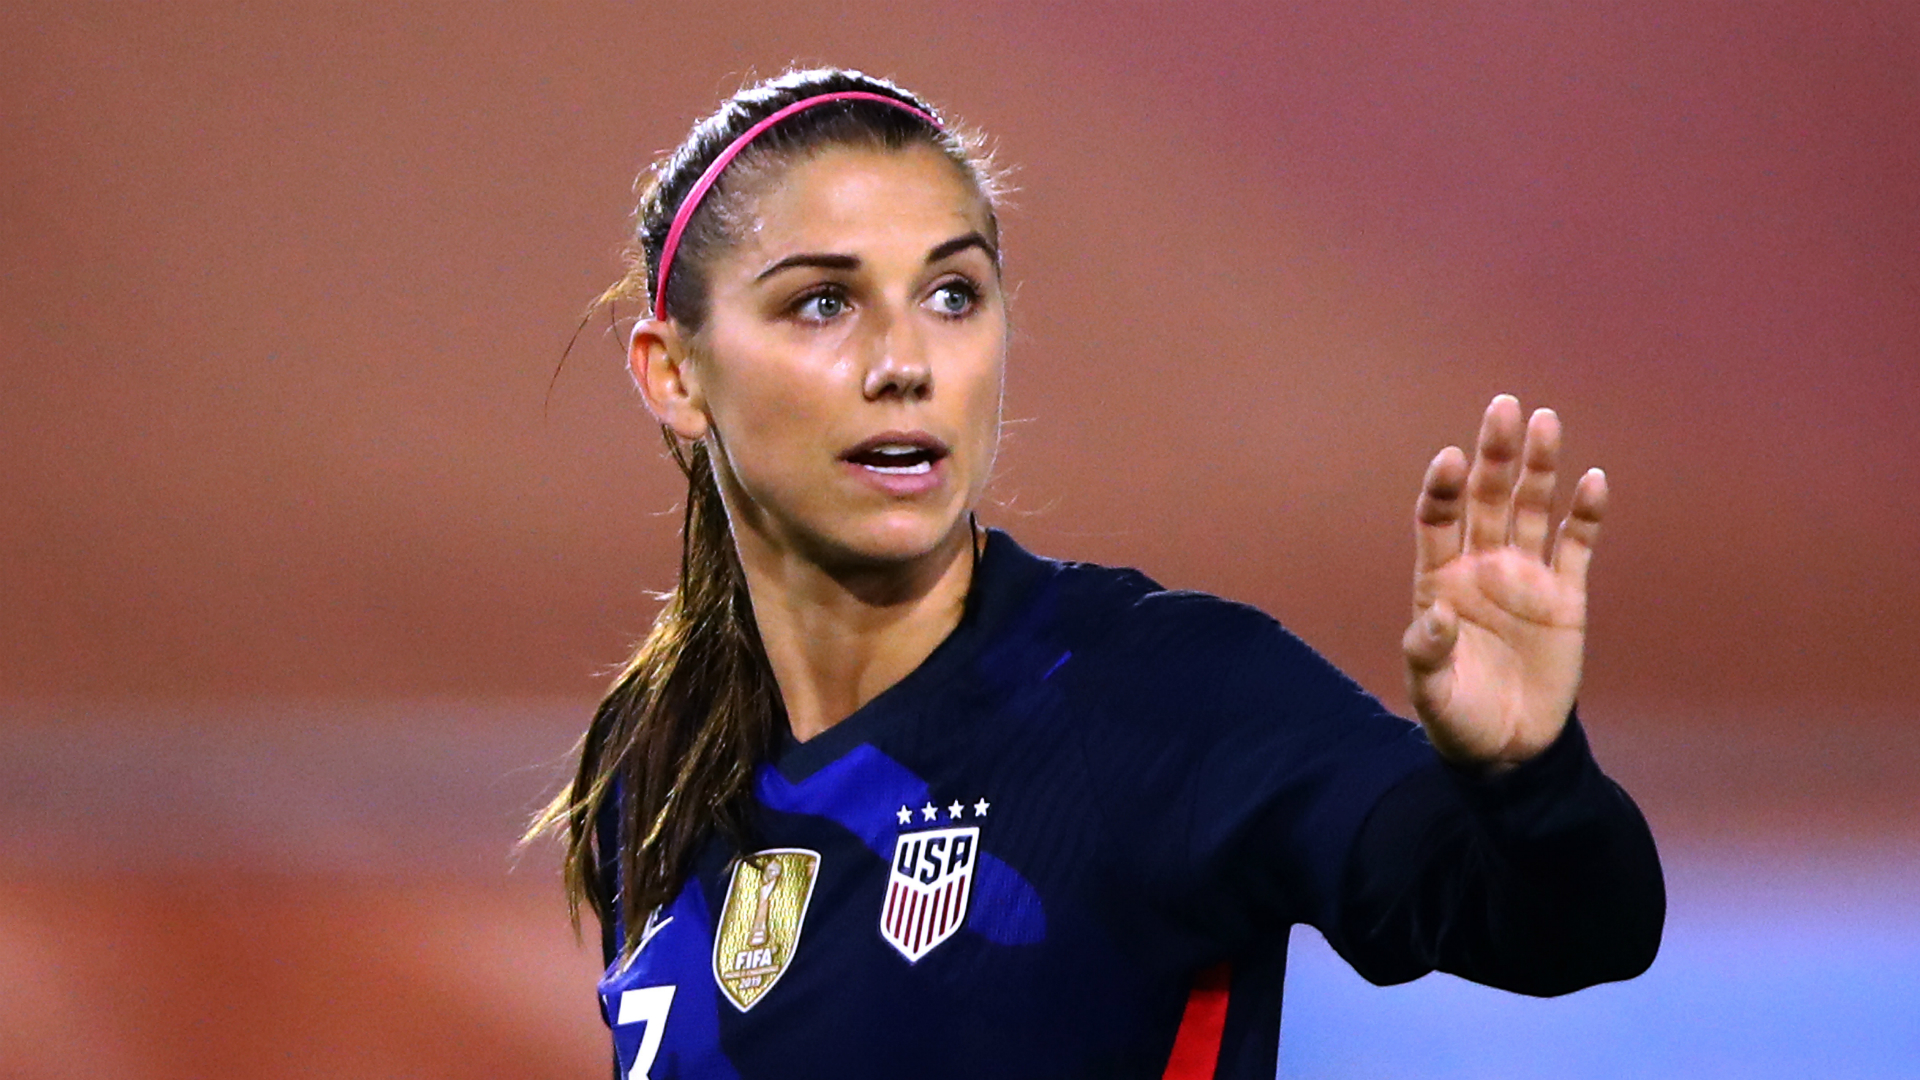 Alex Morgan and family battle COVID: USWNT star's California holidays misery